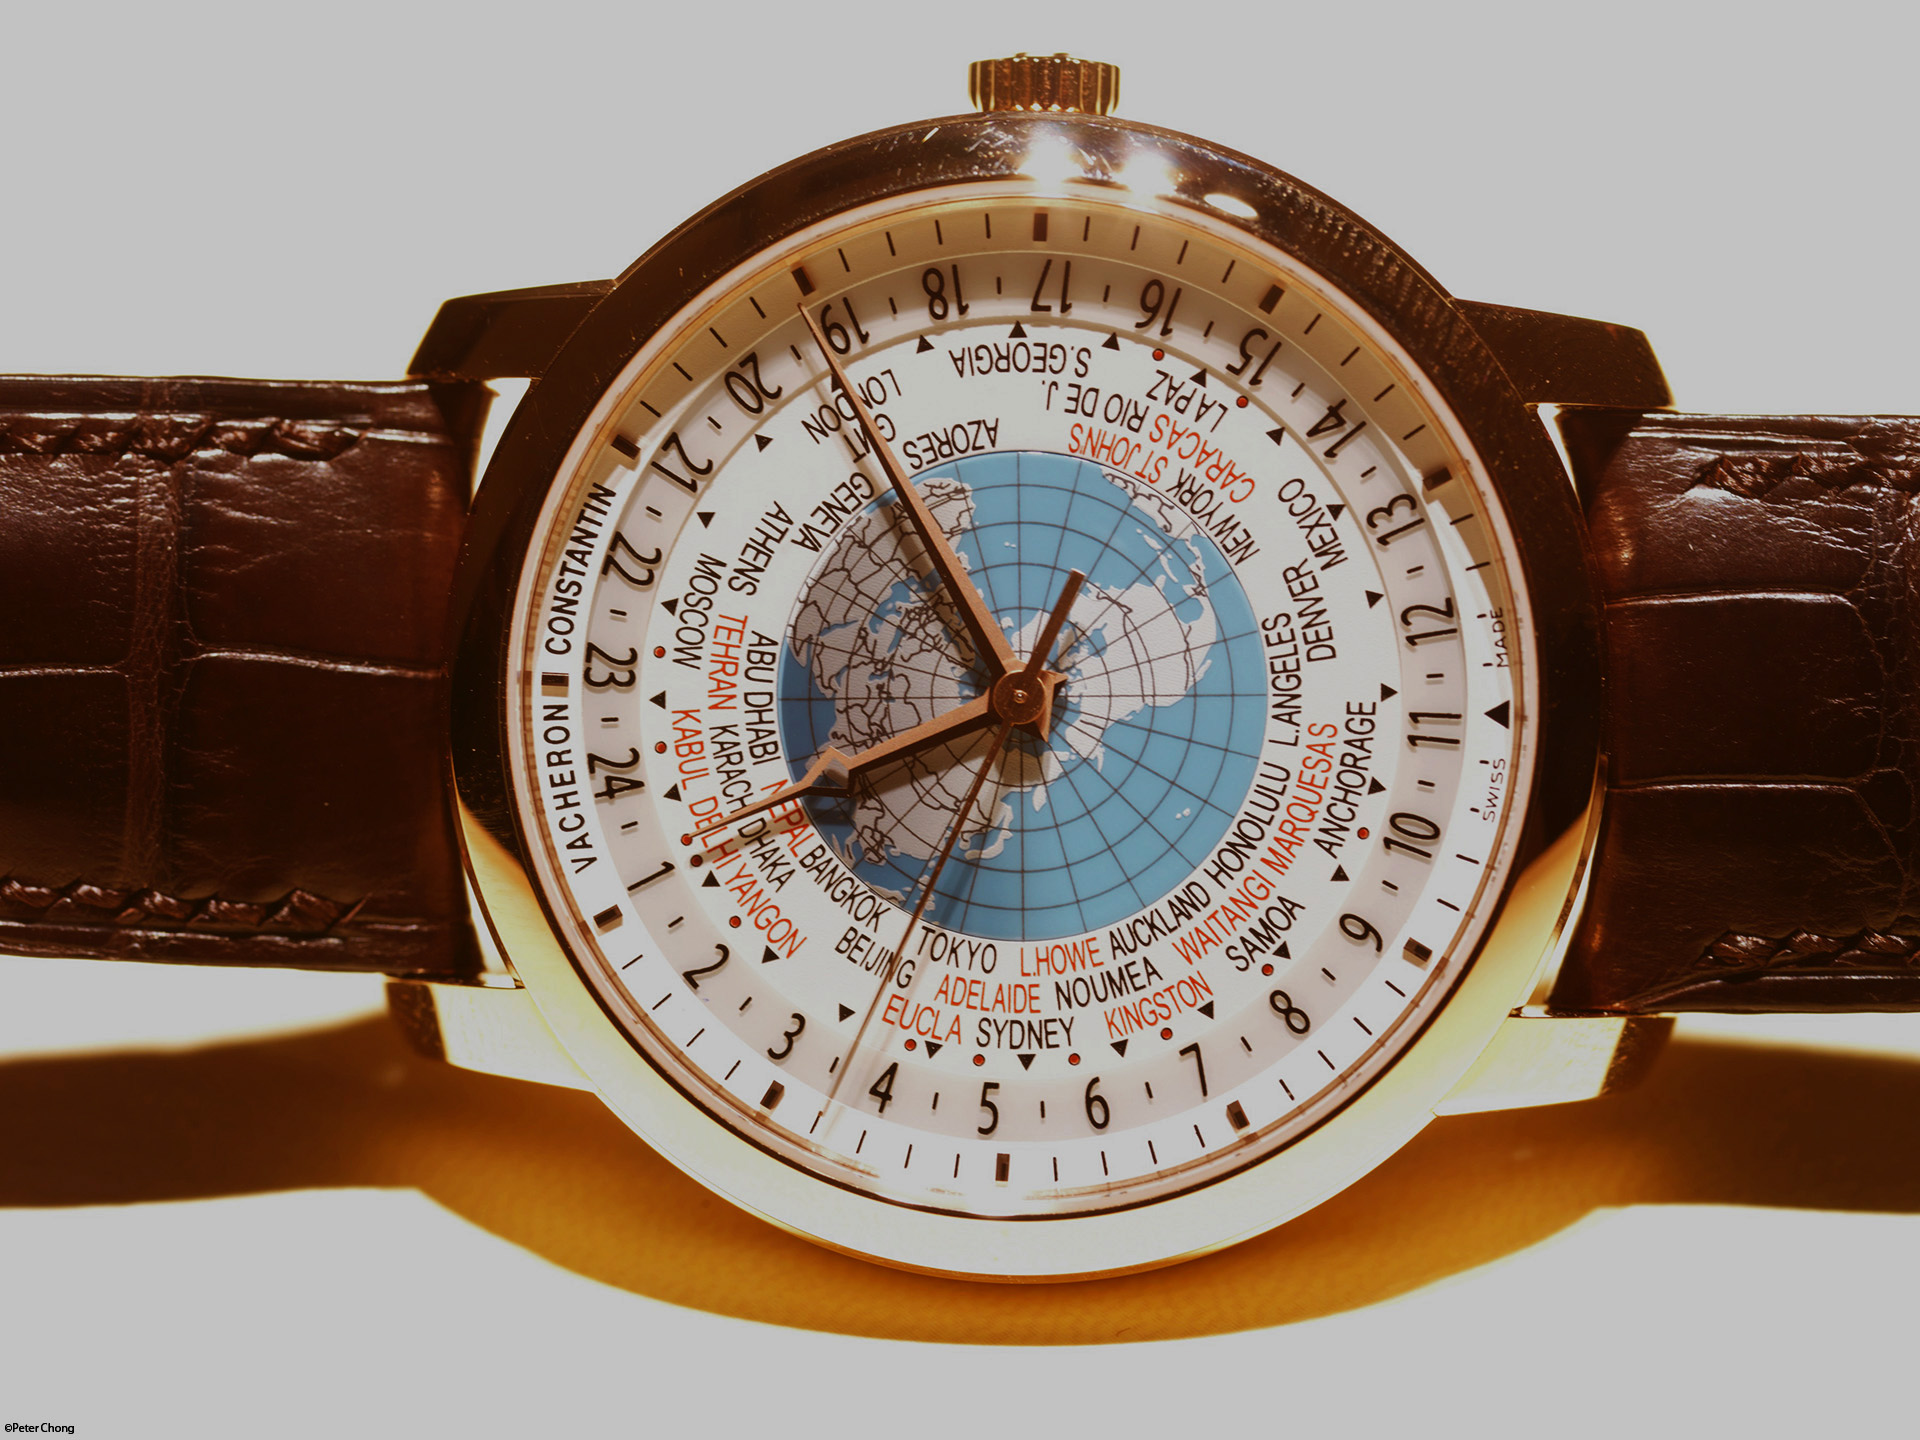 iwc timepieces watches worldtime new timer world and ways set magazine hand zone using just wearer allows globe pilot worldtimers watch topics display by see s magazines article a the jewellery to bezel style timezoner hour chronograph time date